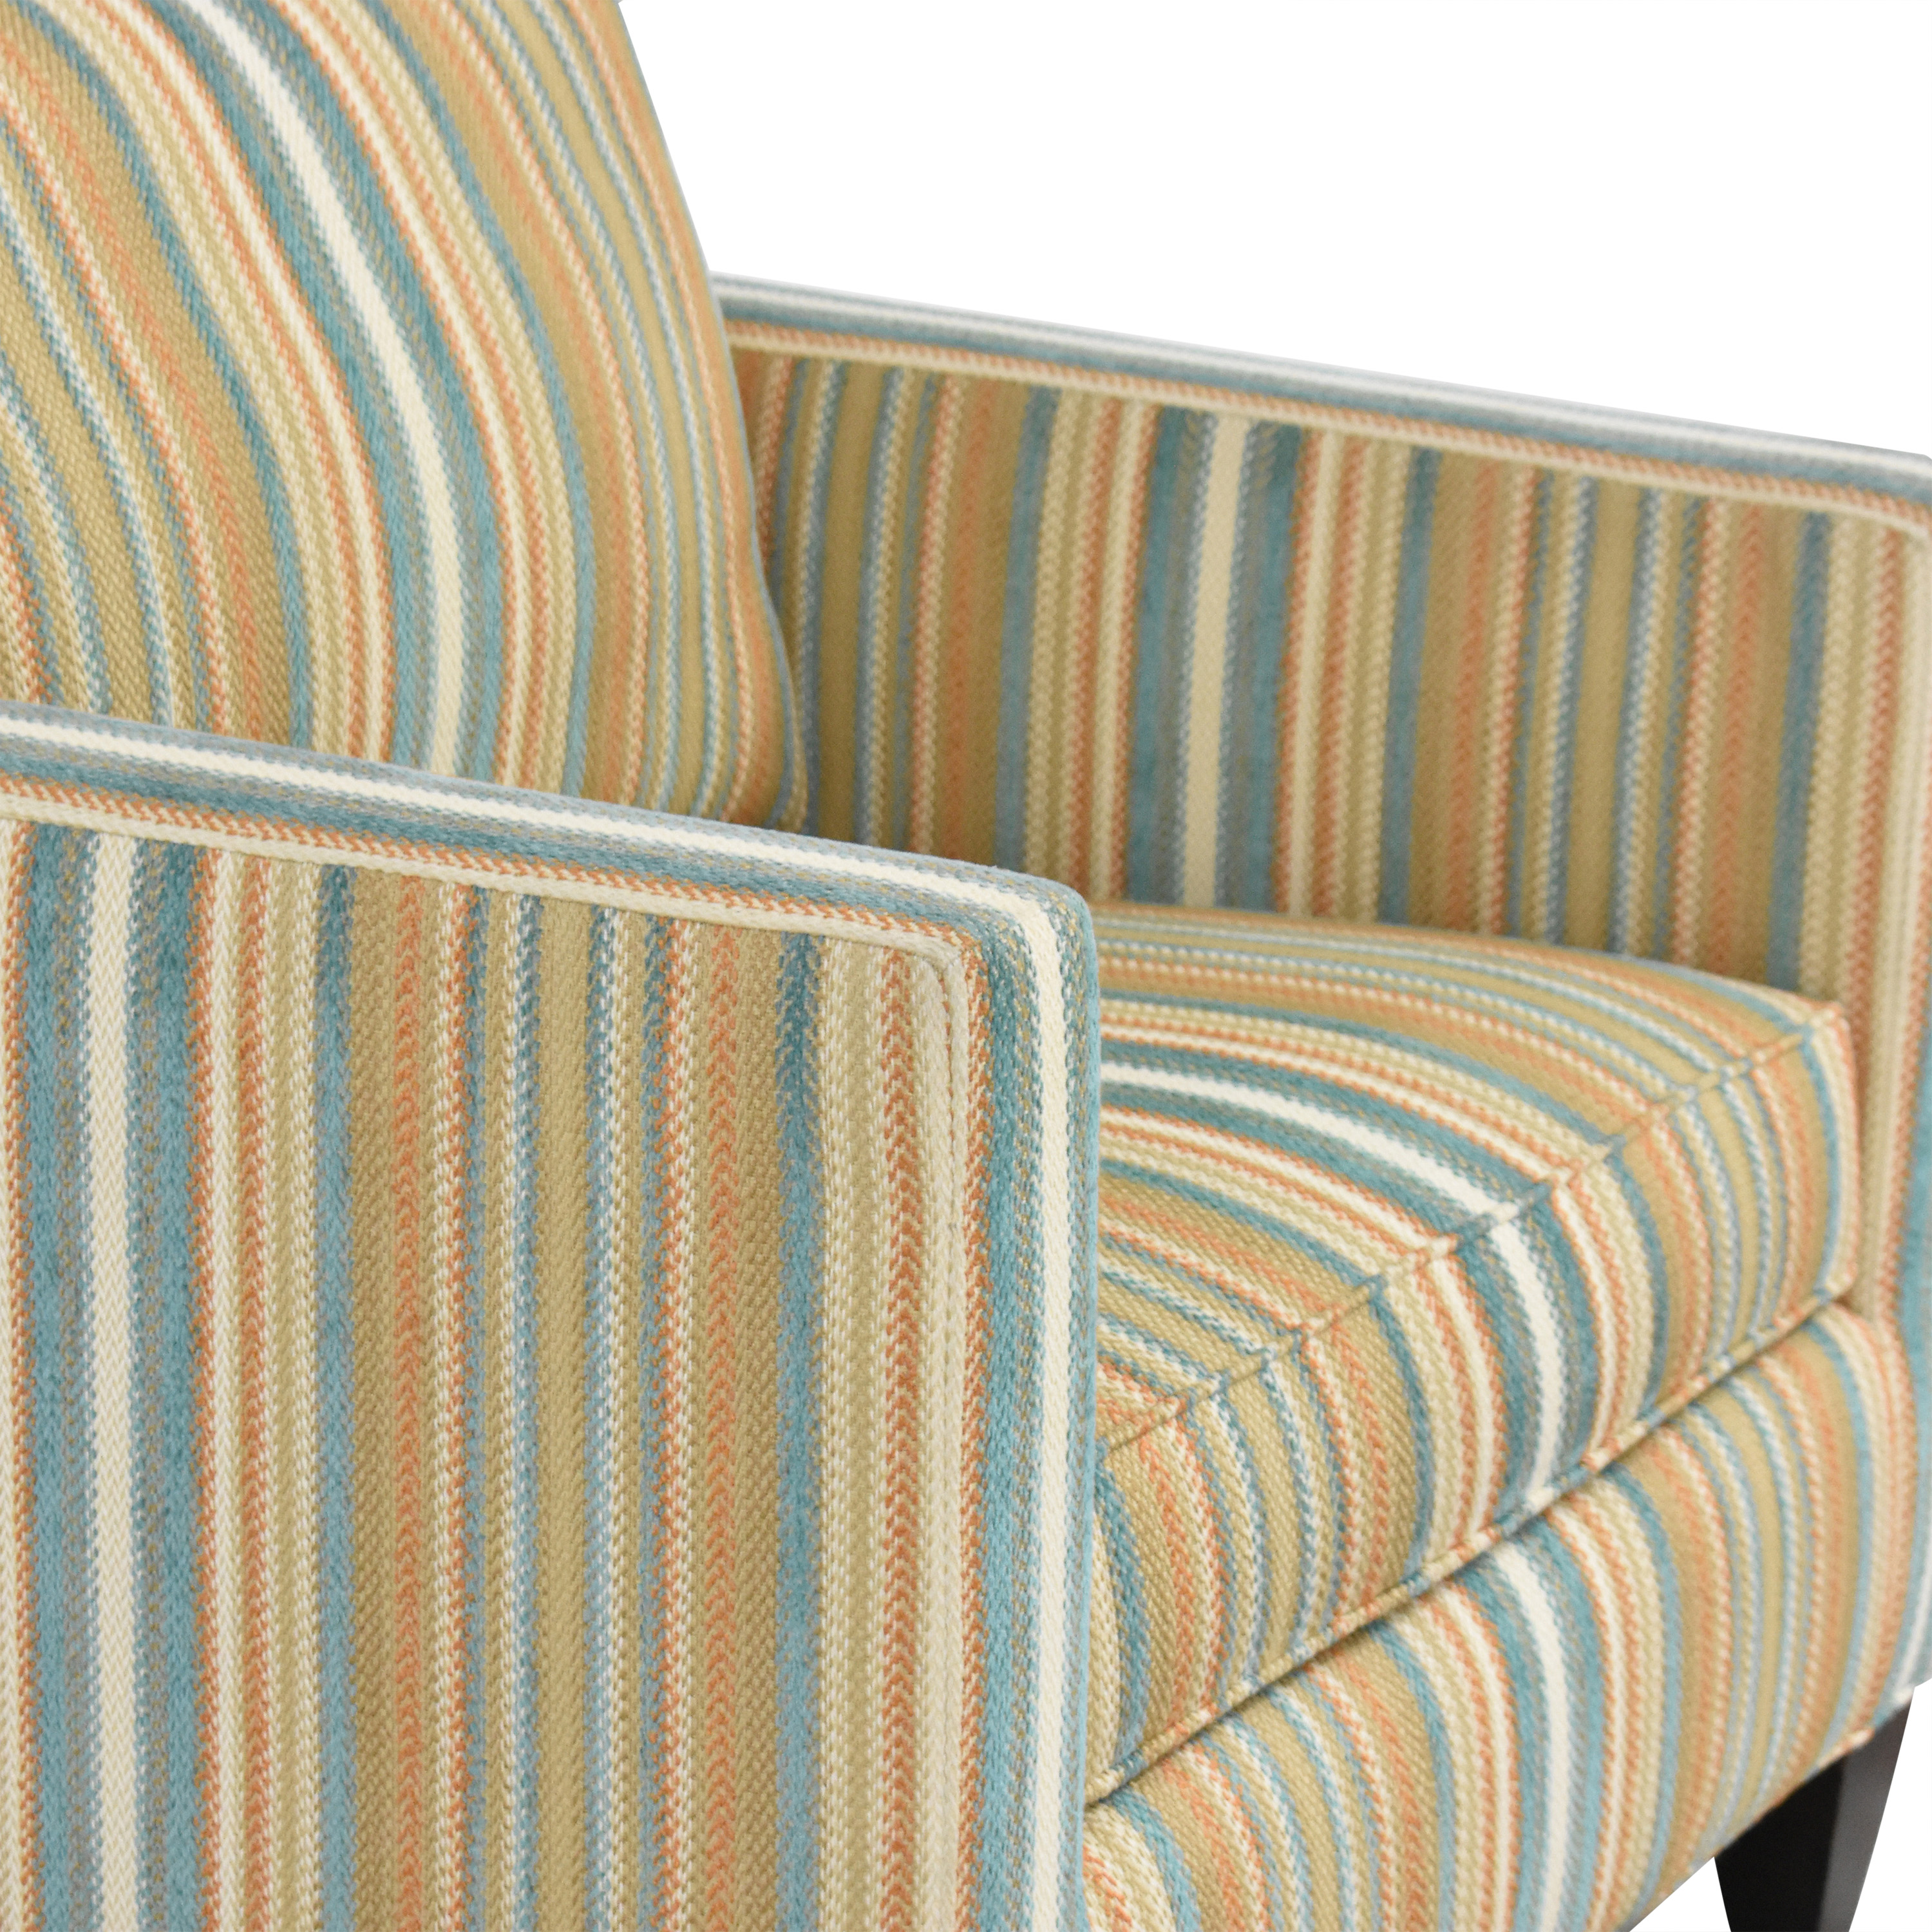 Thomasville Thomasville Striped Accent Chair coupon